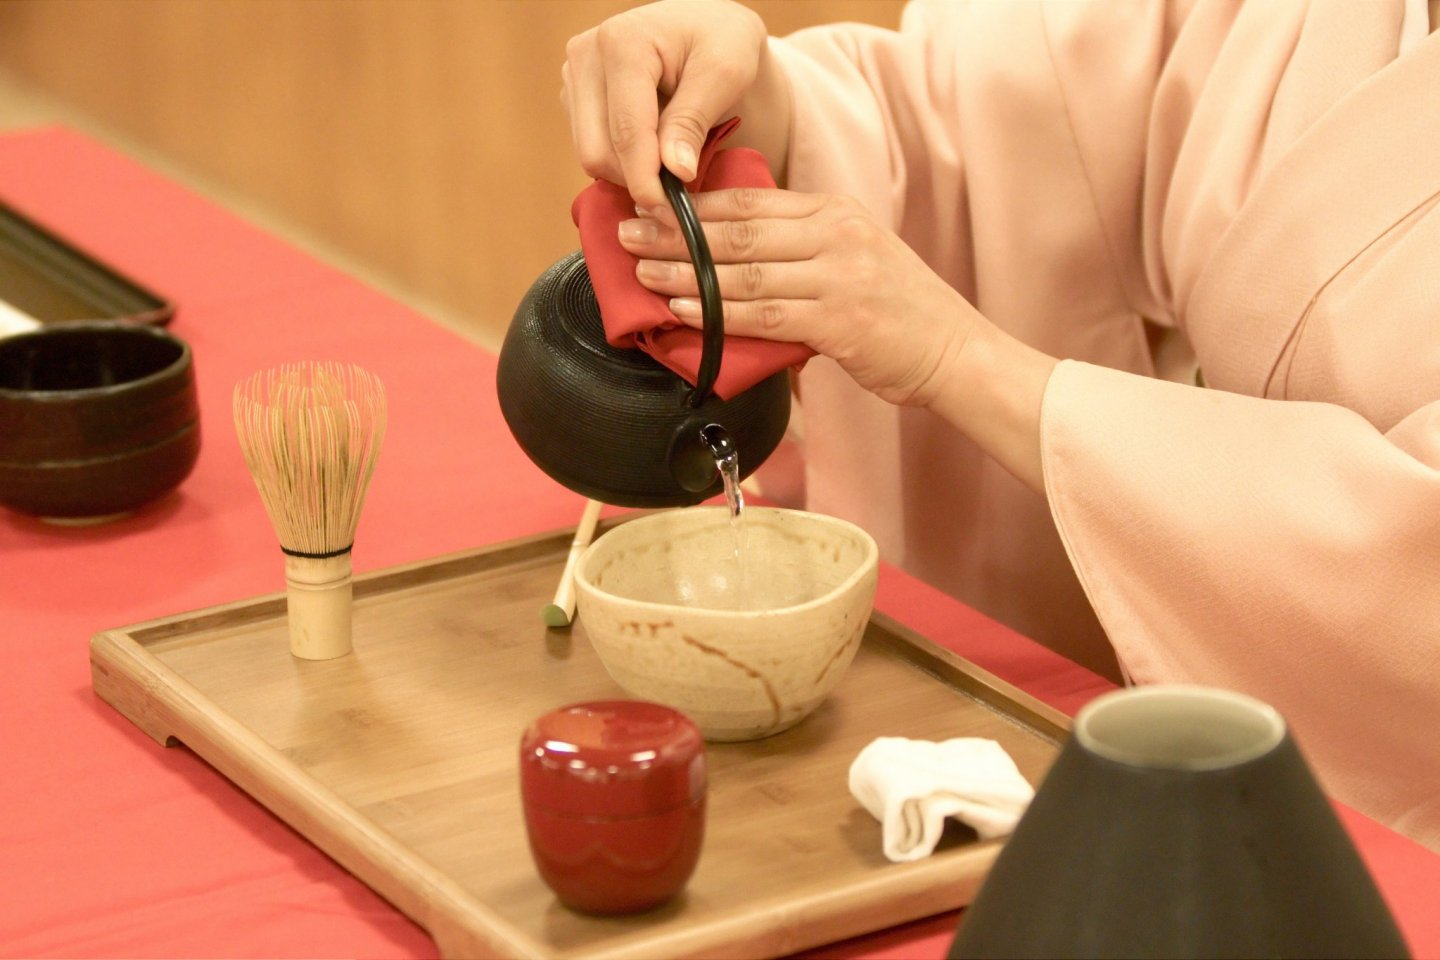 The importance and beauty of tea ceremonies was highlighted in Okakura Tenshin\'s \'The Book of Tea\'